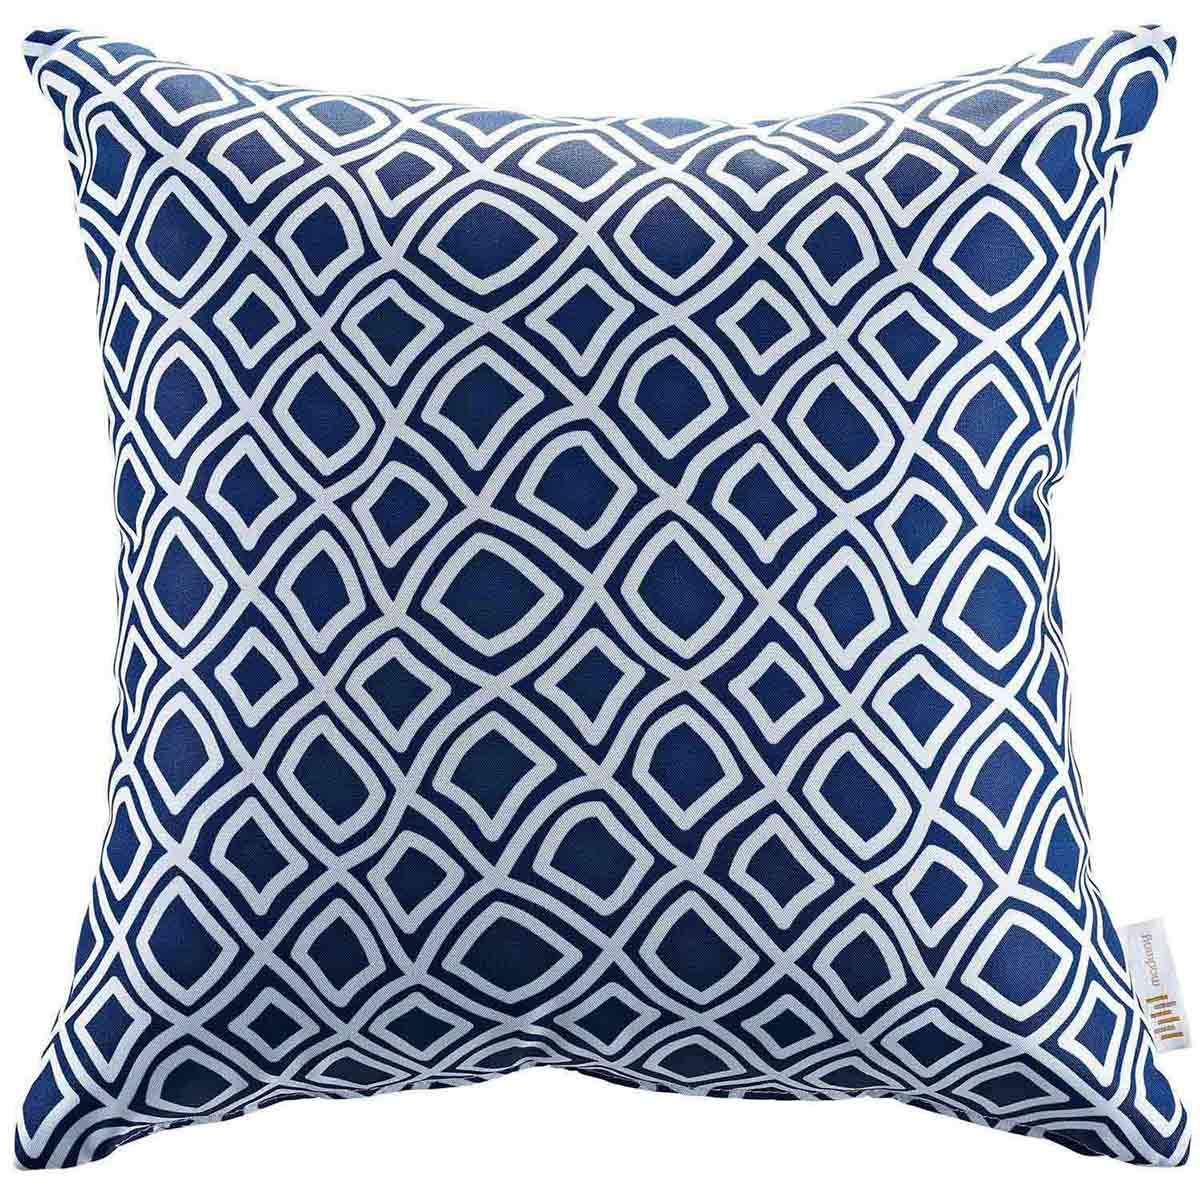 Modway Modway Outdoor Patio Pillow - Balance